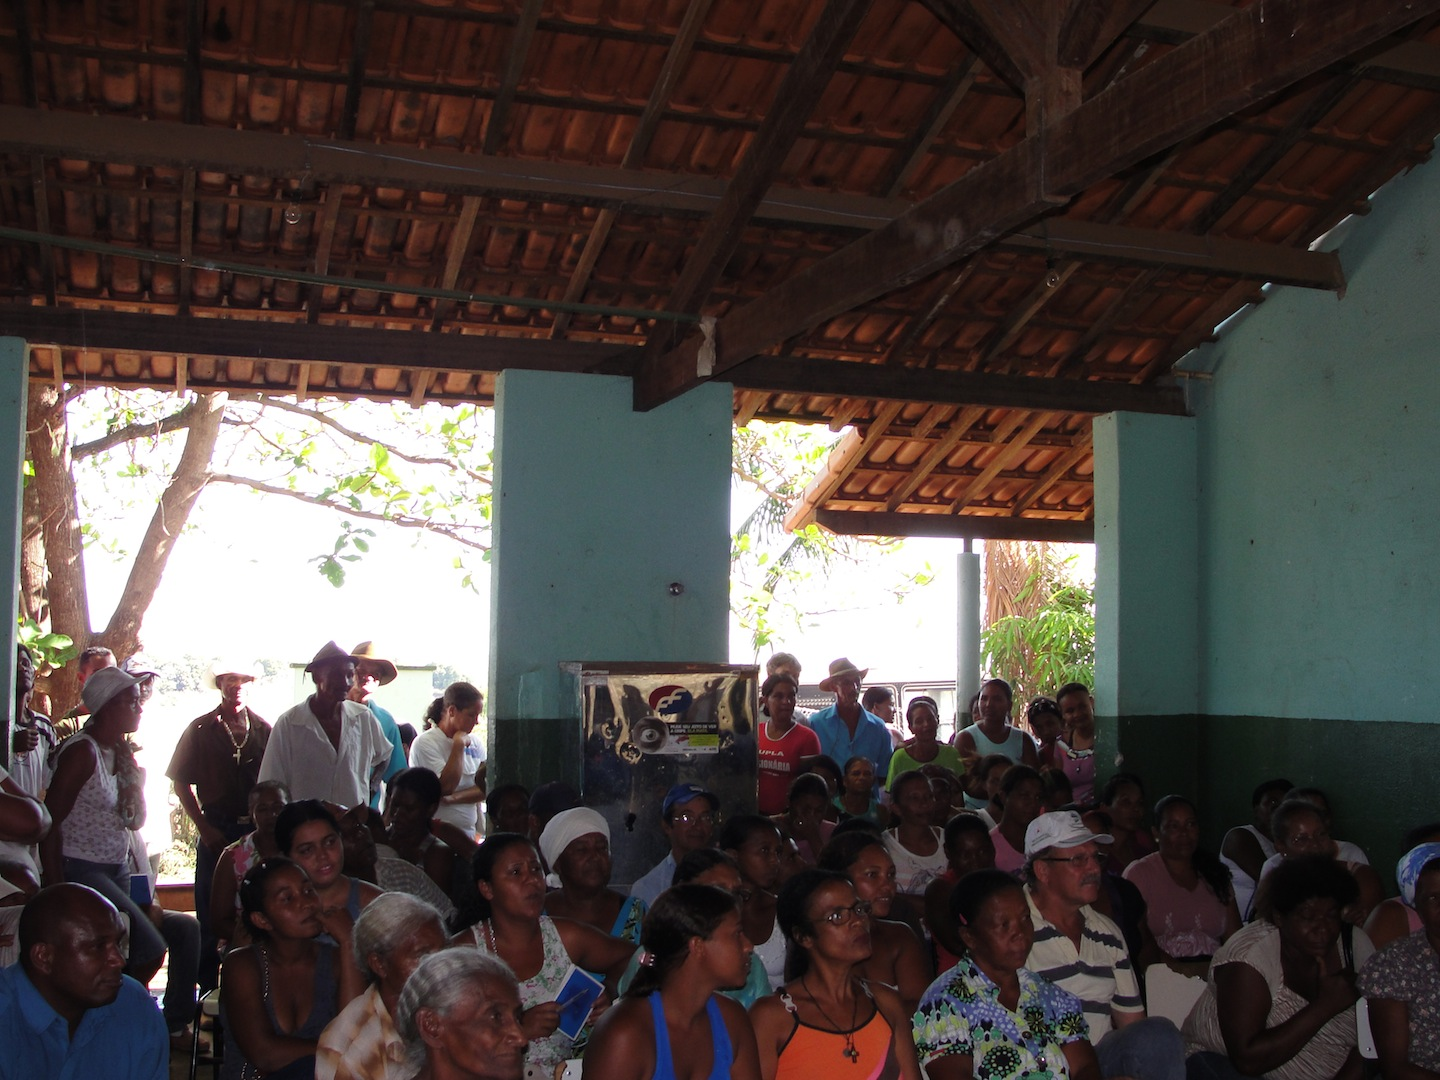 Meeting to approve geographical limits of Quilombo 5